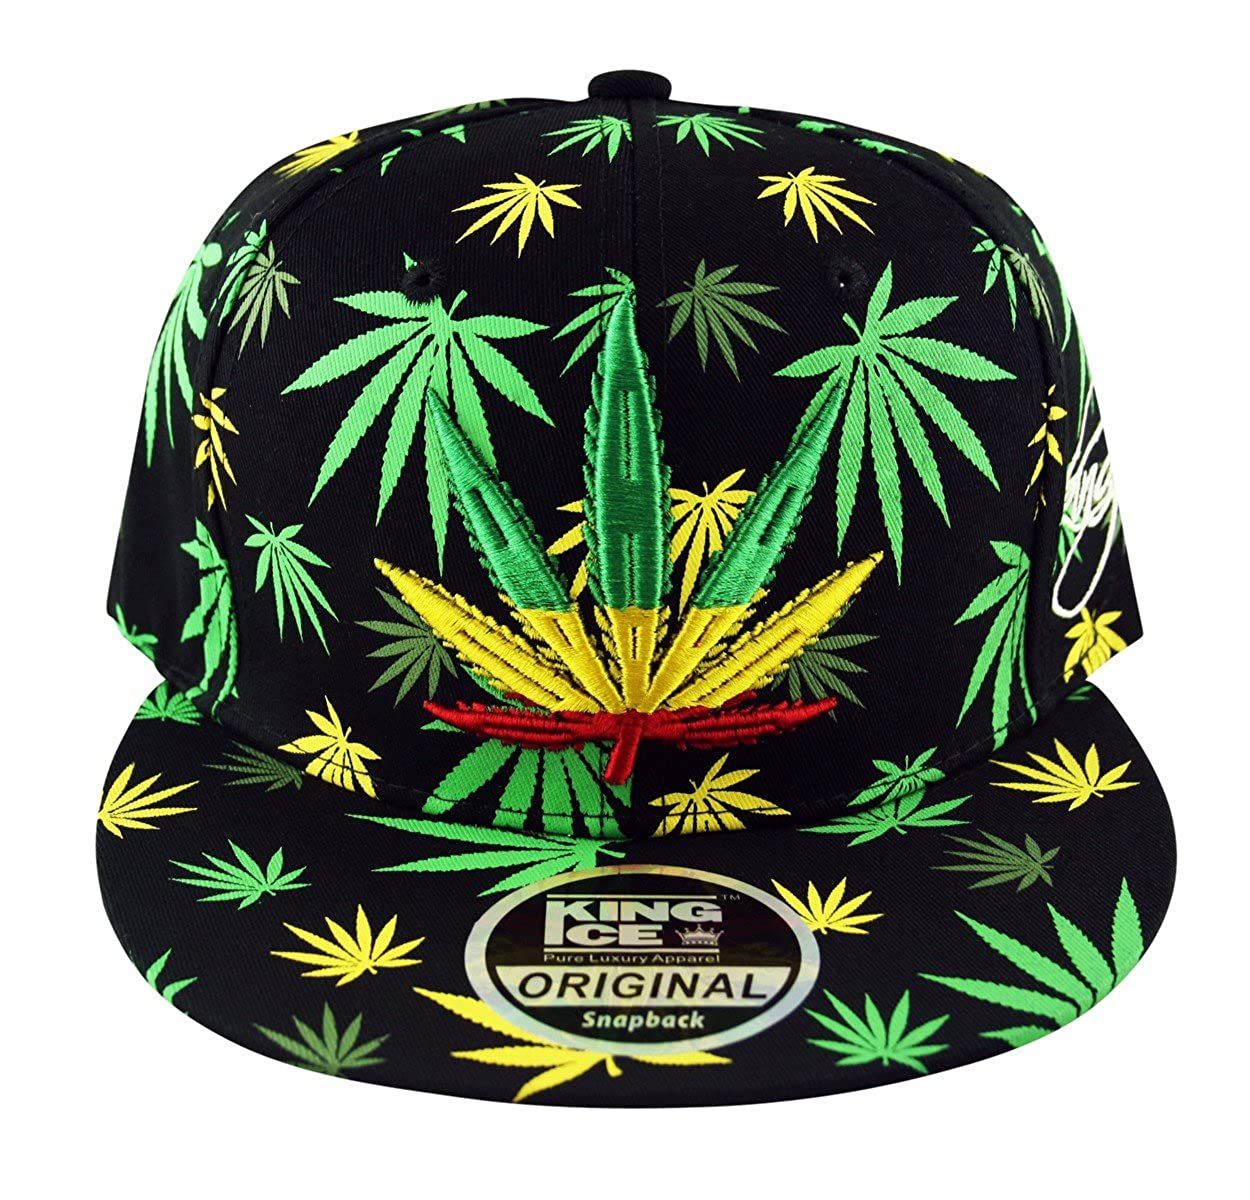 02ffff751b773 King Ice Rasta Snapback Baseball Cap Weed Leaf Flag Hat Black and Yellow  Green All Over  Amazon.co.uk  Clothing